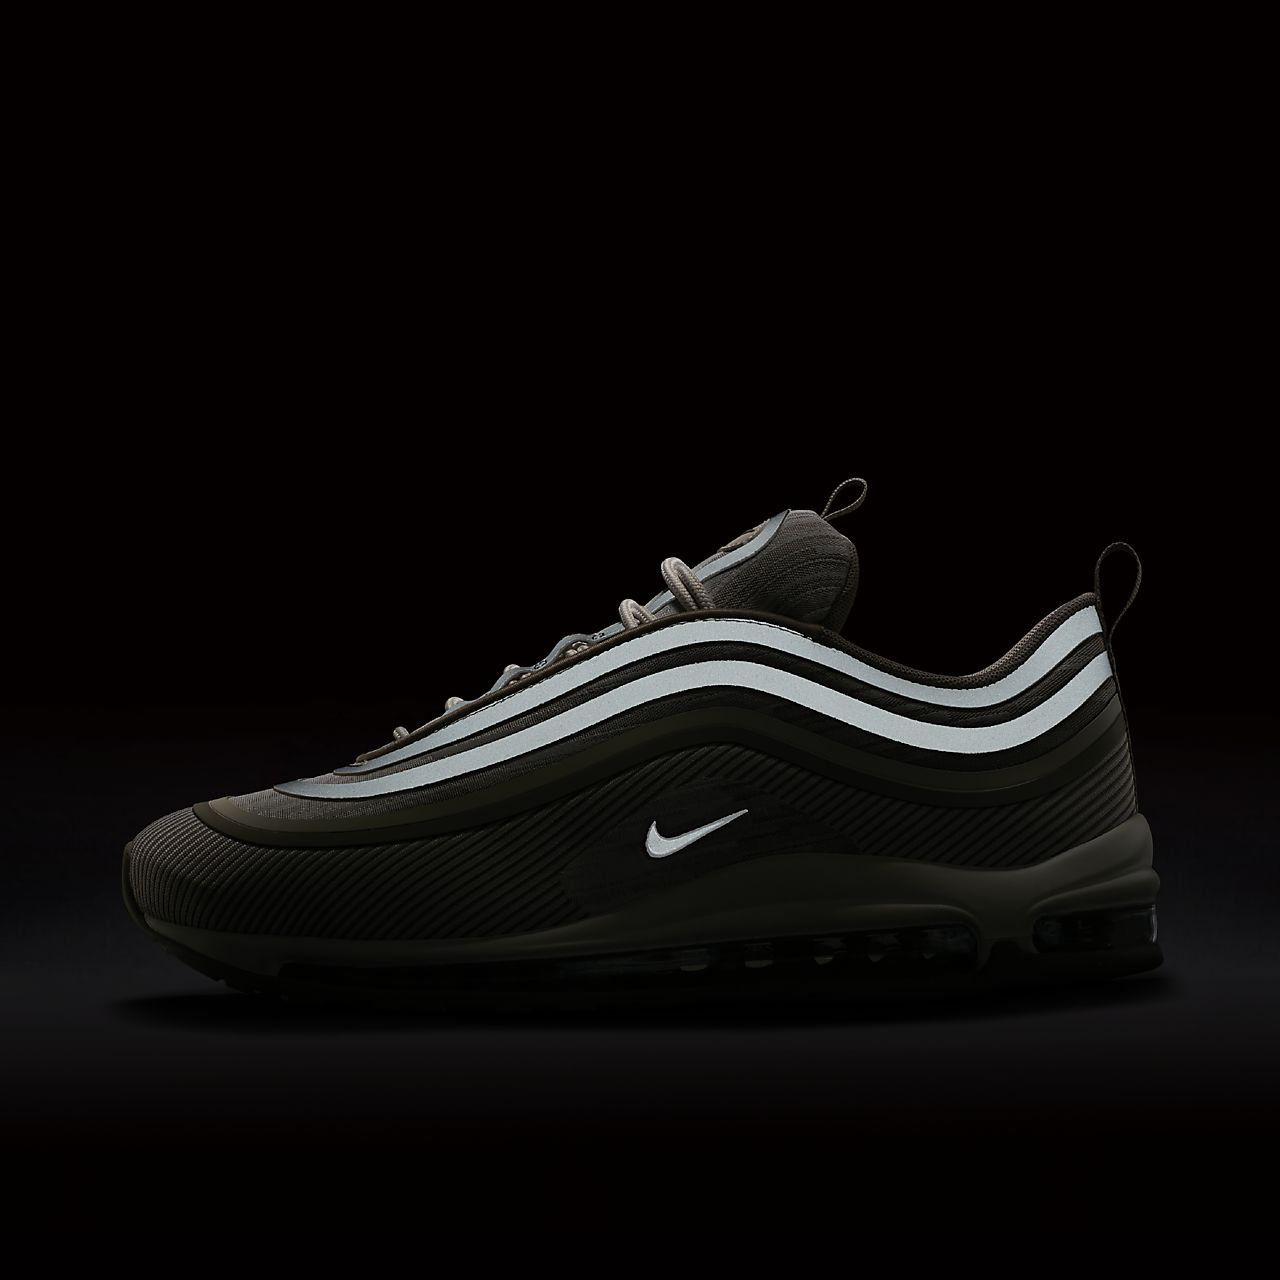 official photos 18b8b fe5b0 Nike Air Max 97 Ultra '17 Men's Shoe